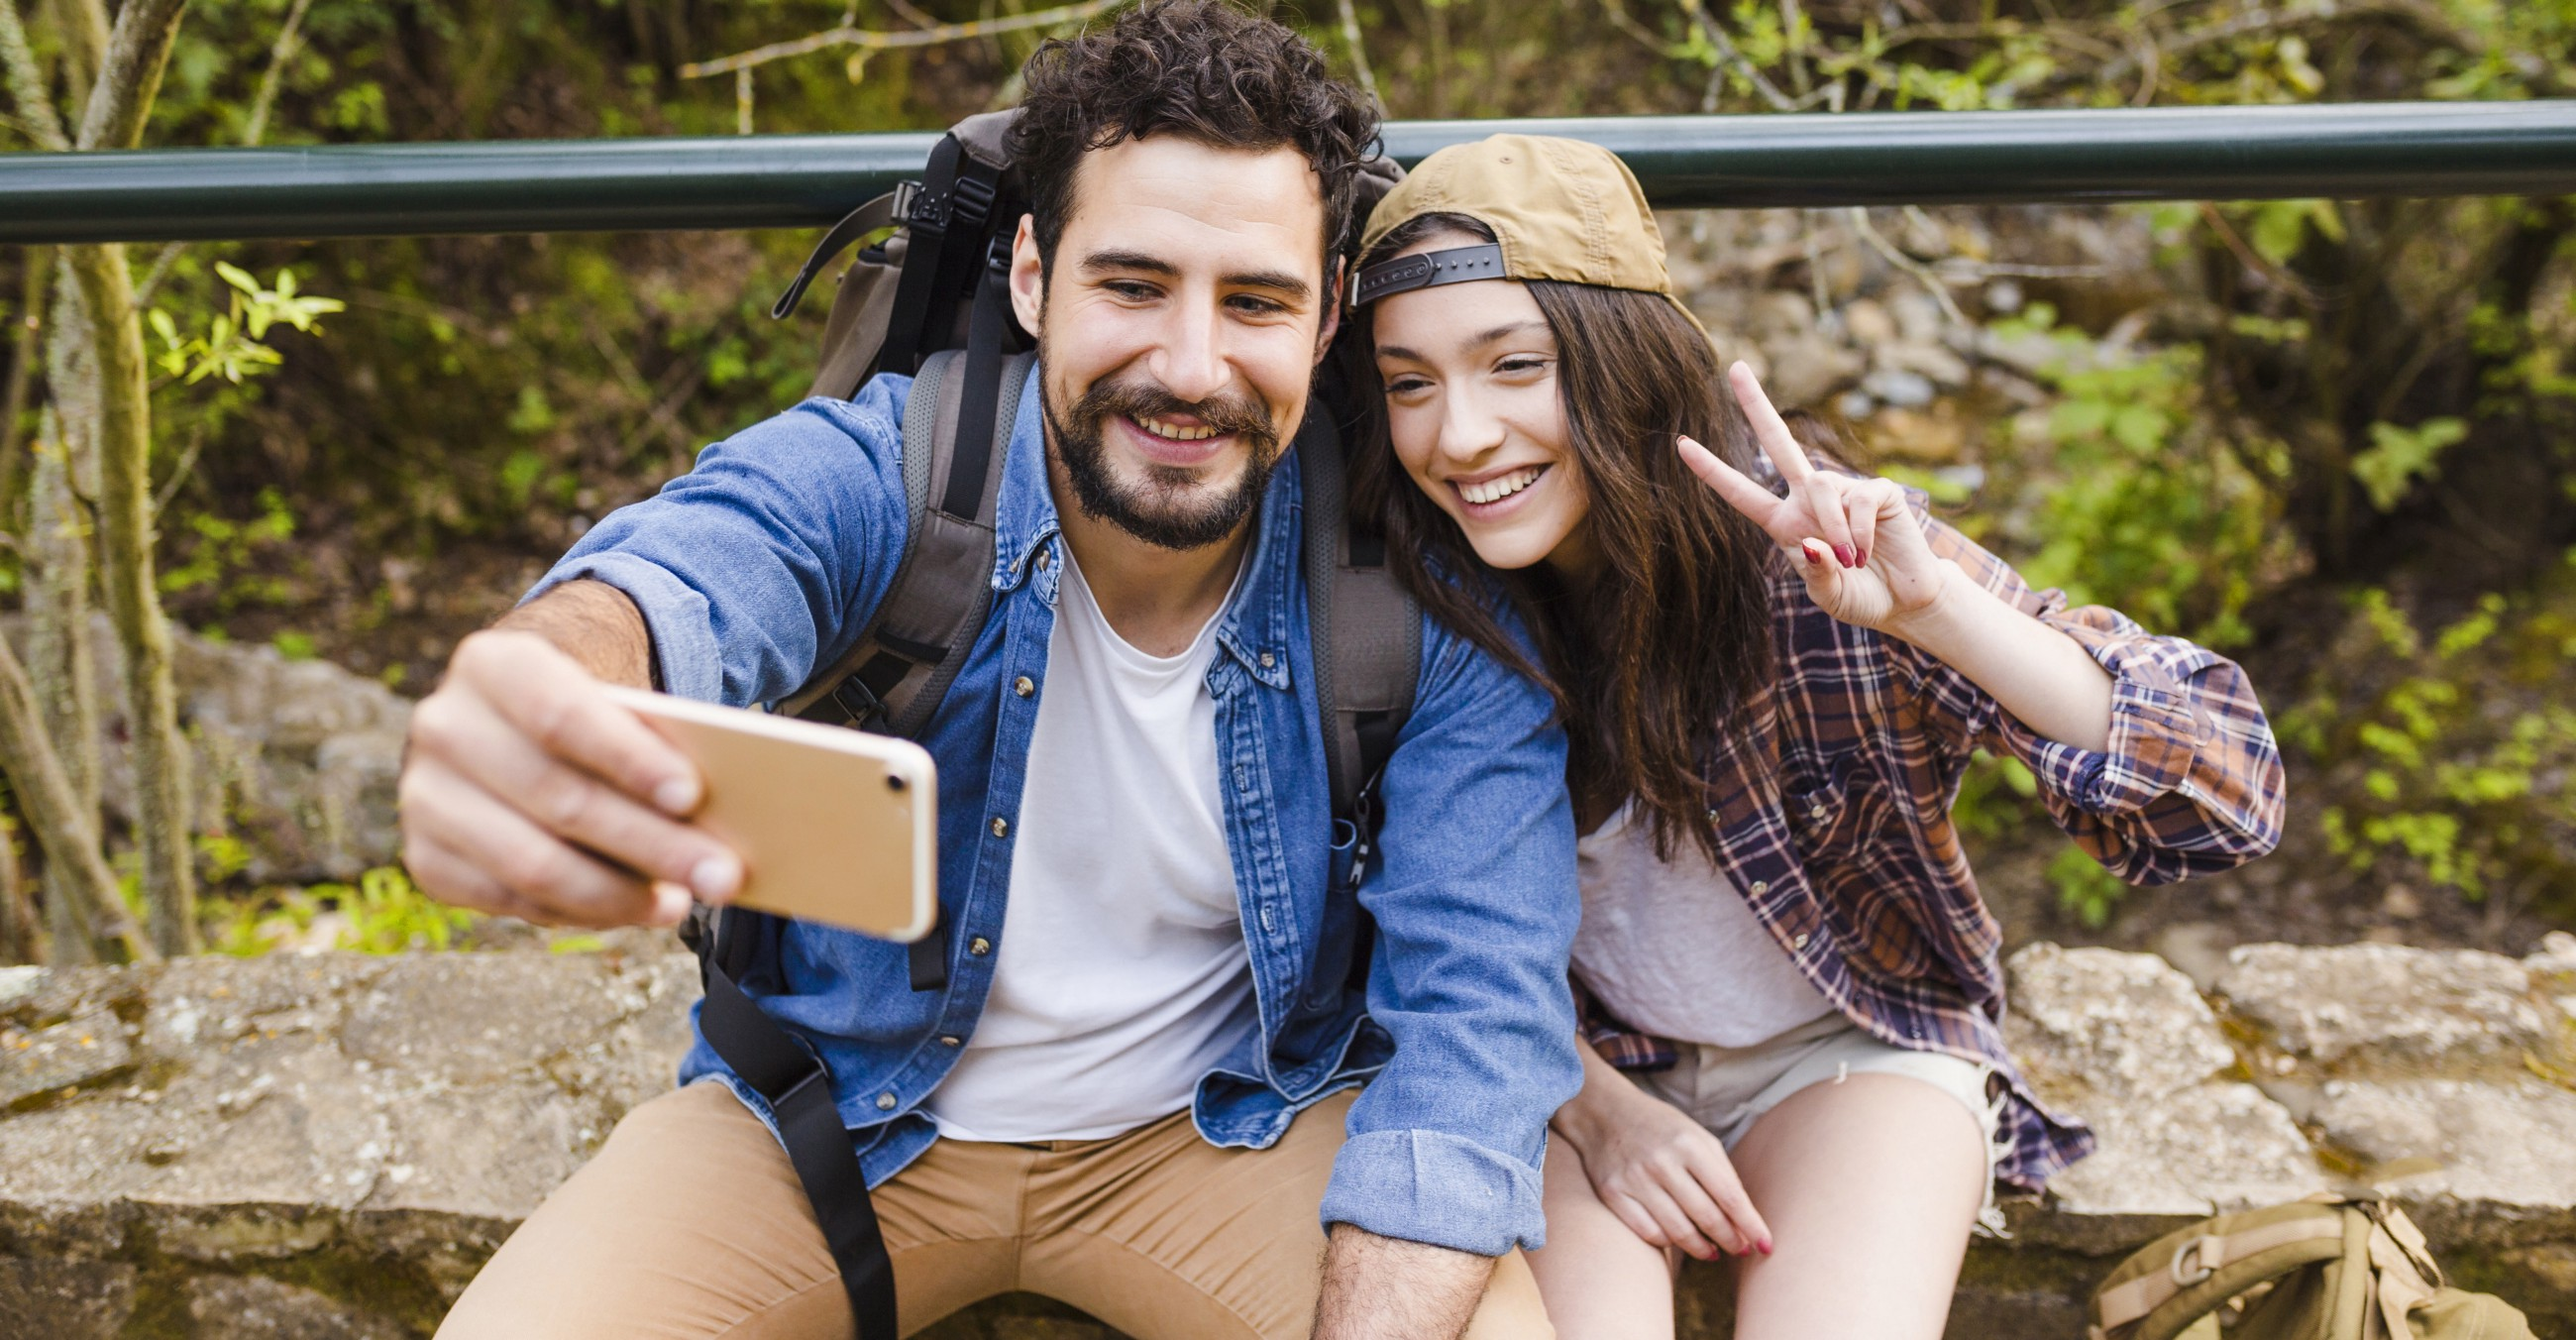 The best dating apps that will help you meet your match for free